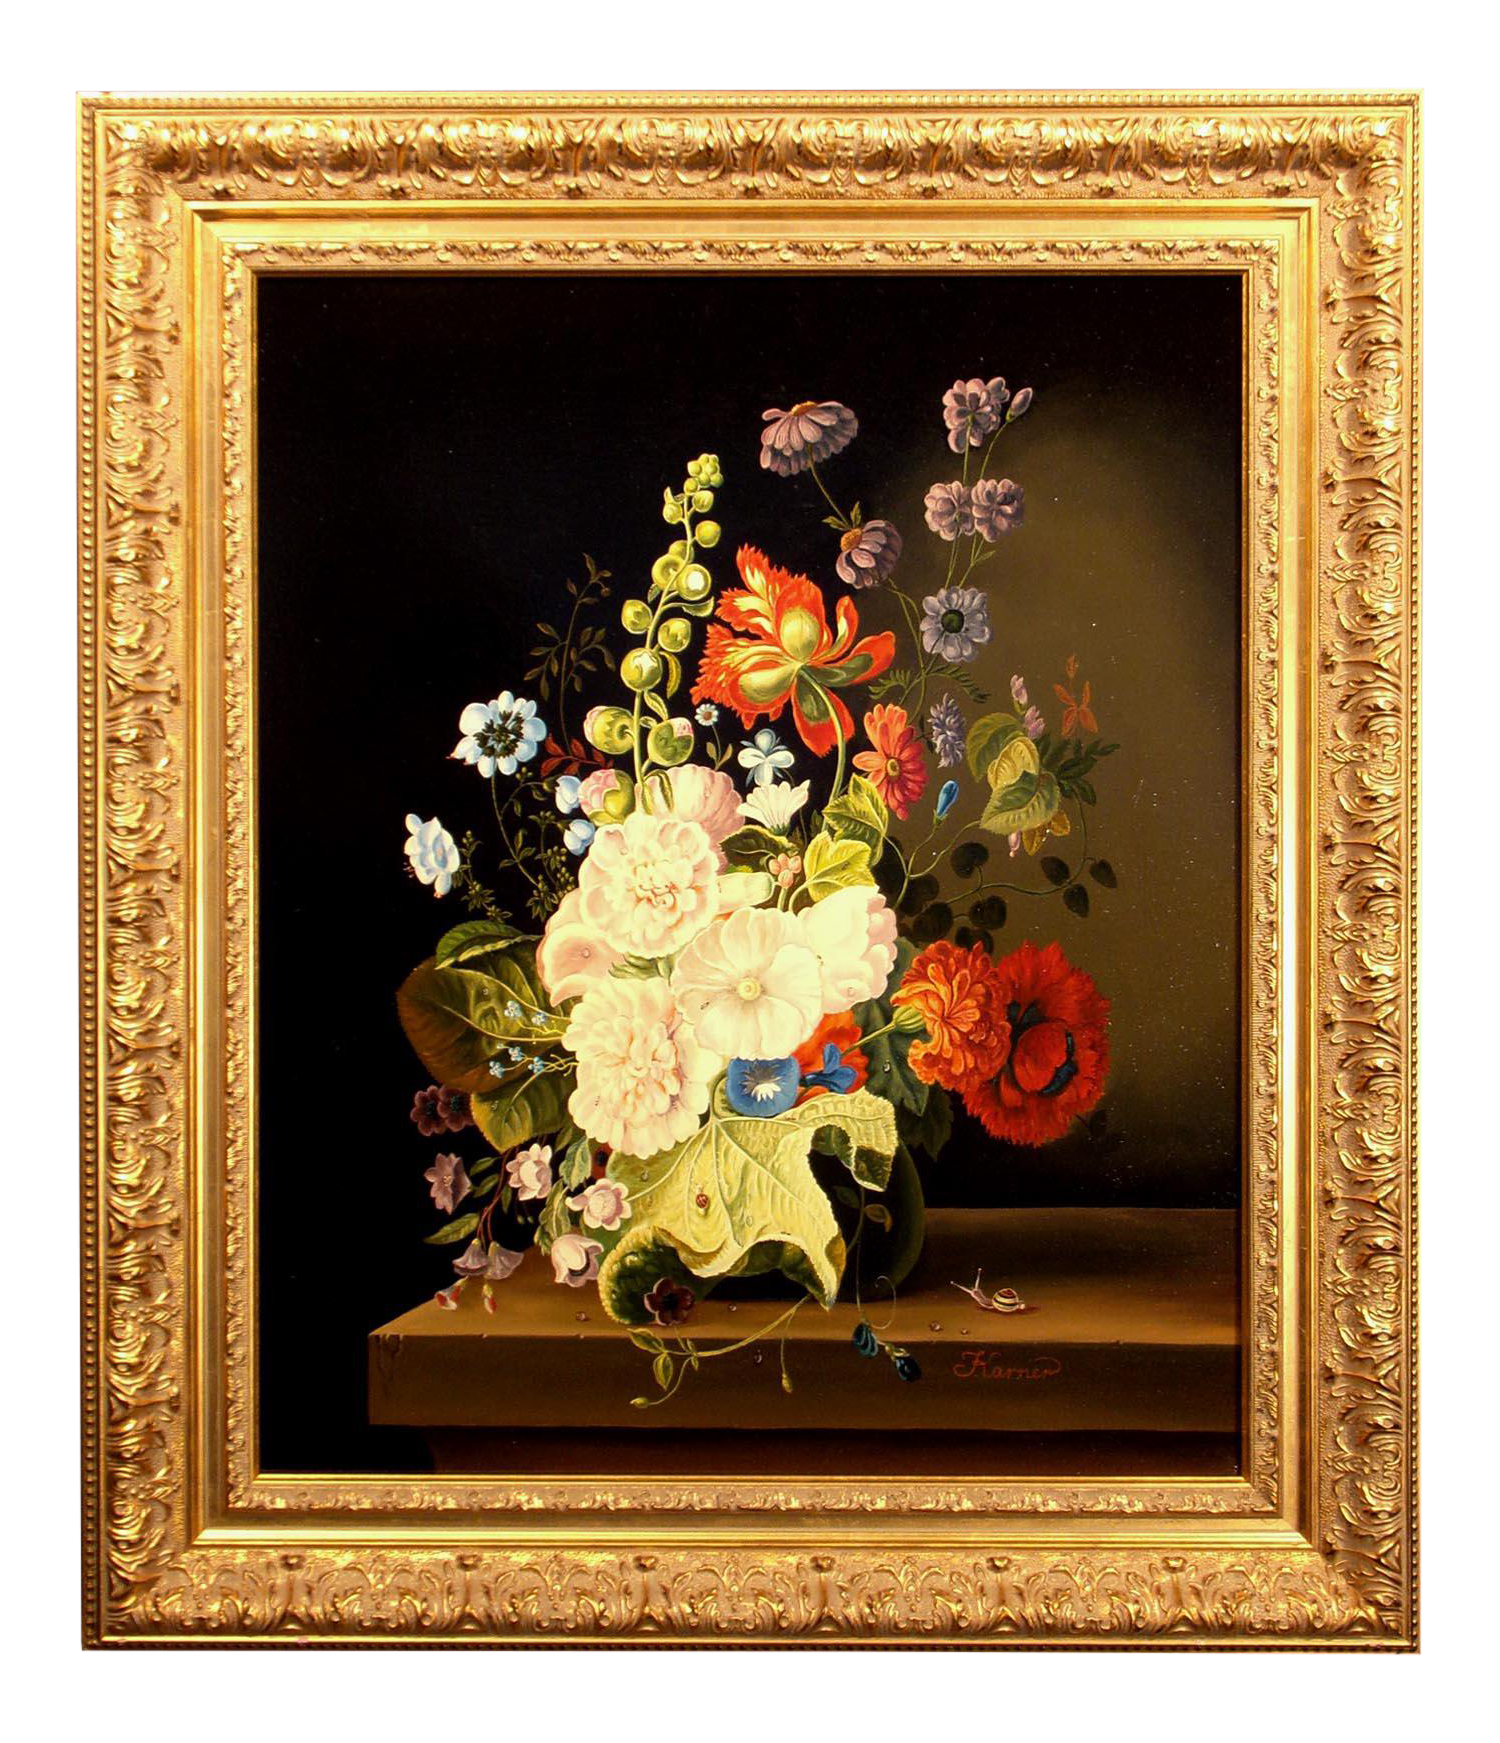 Othmer Karner Flowers Realistic Floral Vase Bouquet Framed Original Oil Painting Signed Chairish